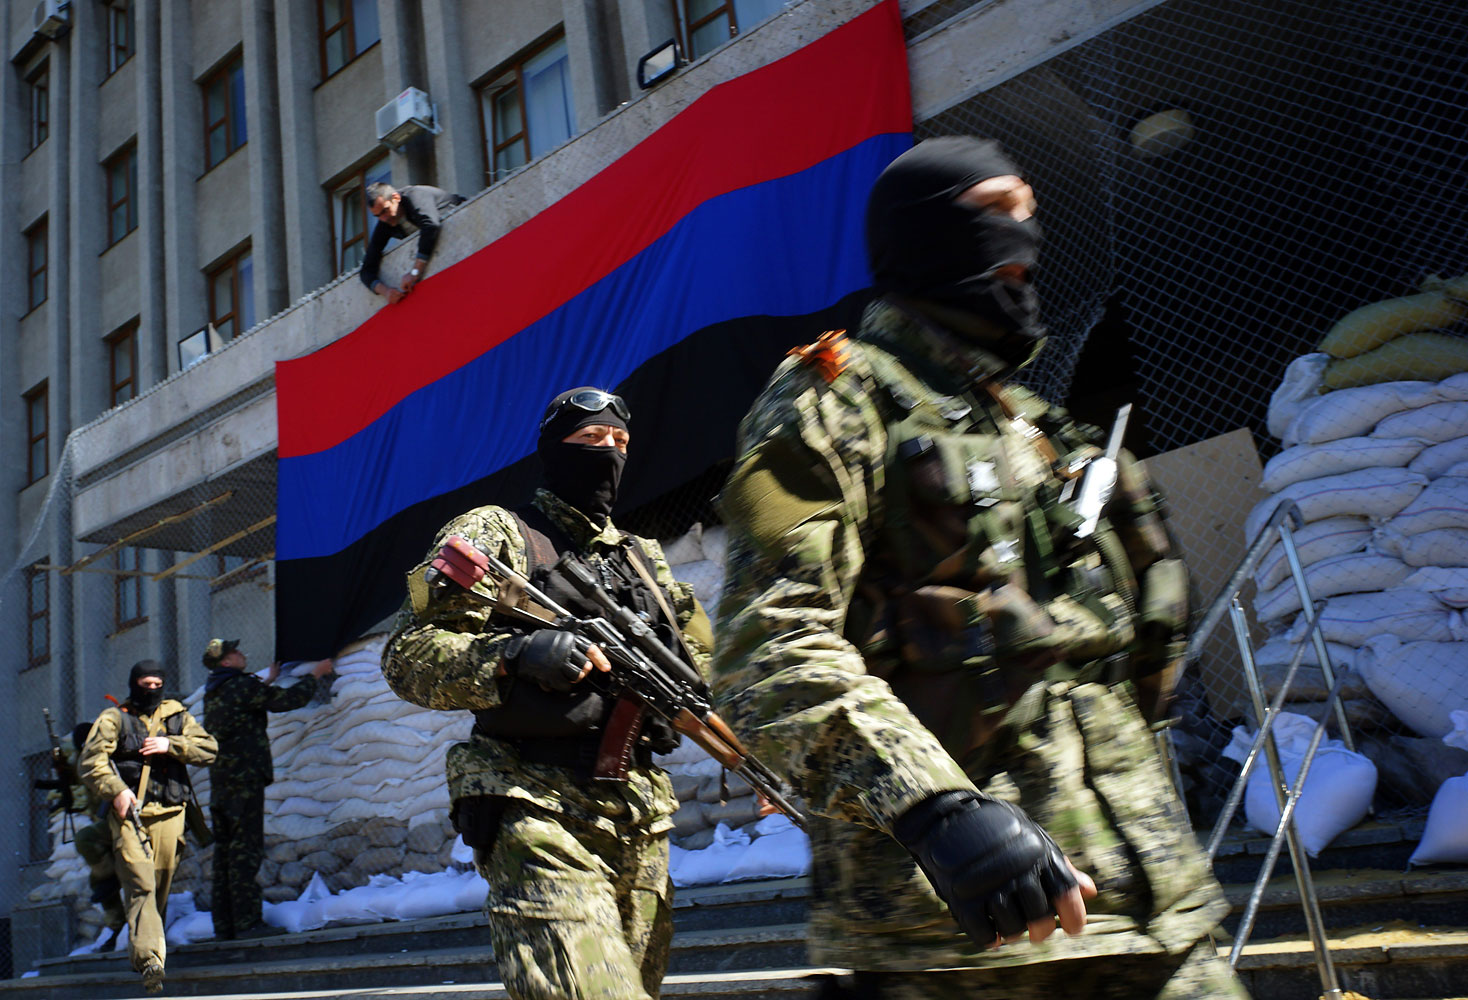 A pro-Russia activist hangs a flag of the so-called  People's Republic of Donetsk  on the regional administration building seized by separatists as armed men in military fatigues guard the premises in the eastern Ukrainian city of Slavyansk on April 21, 2014.